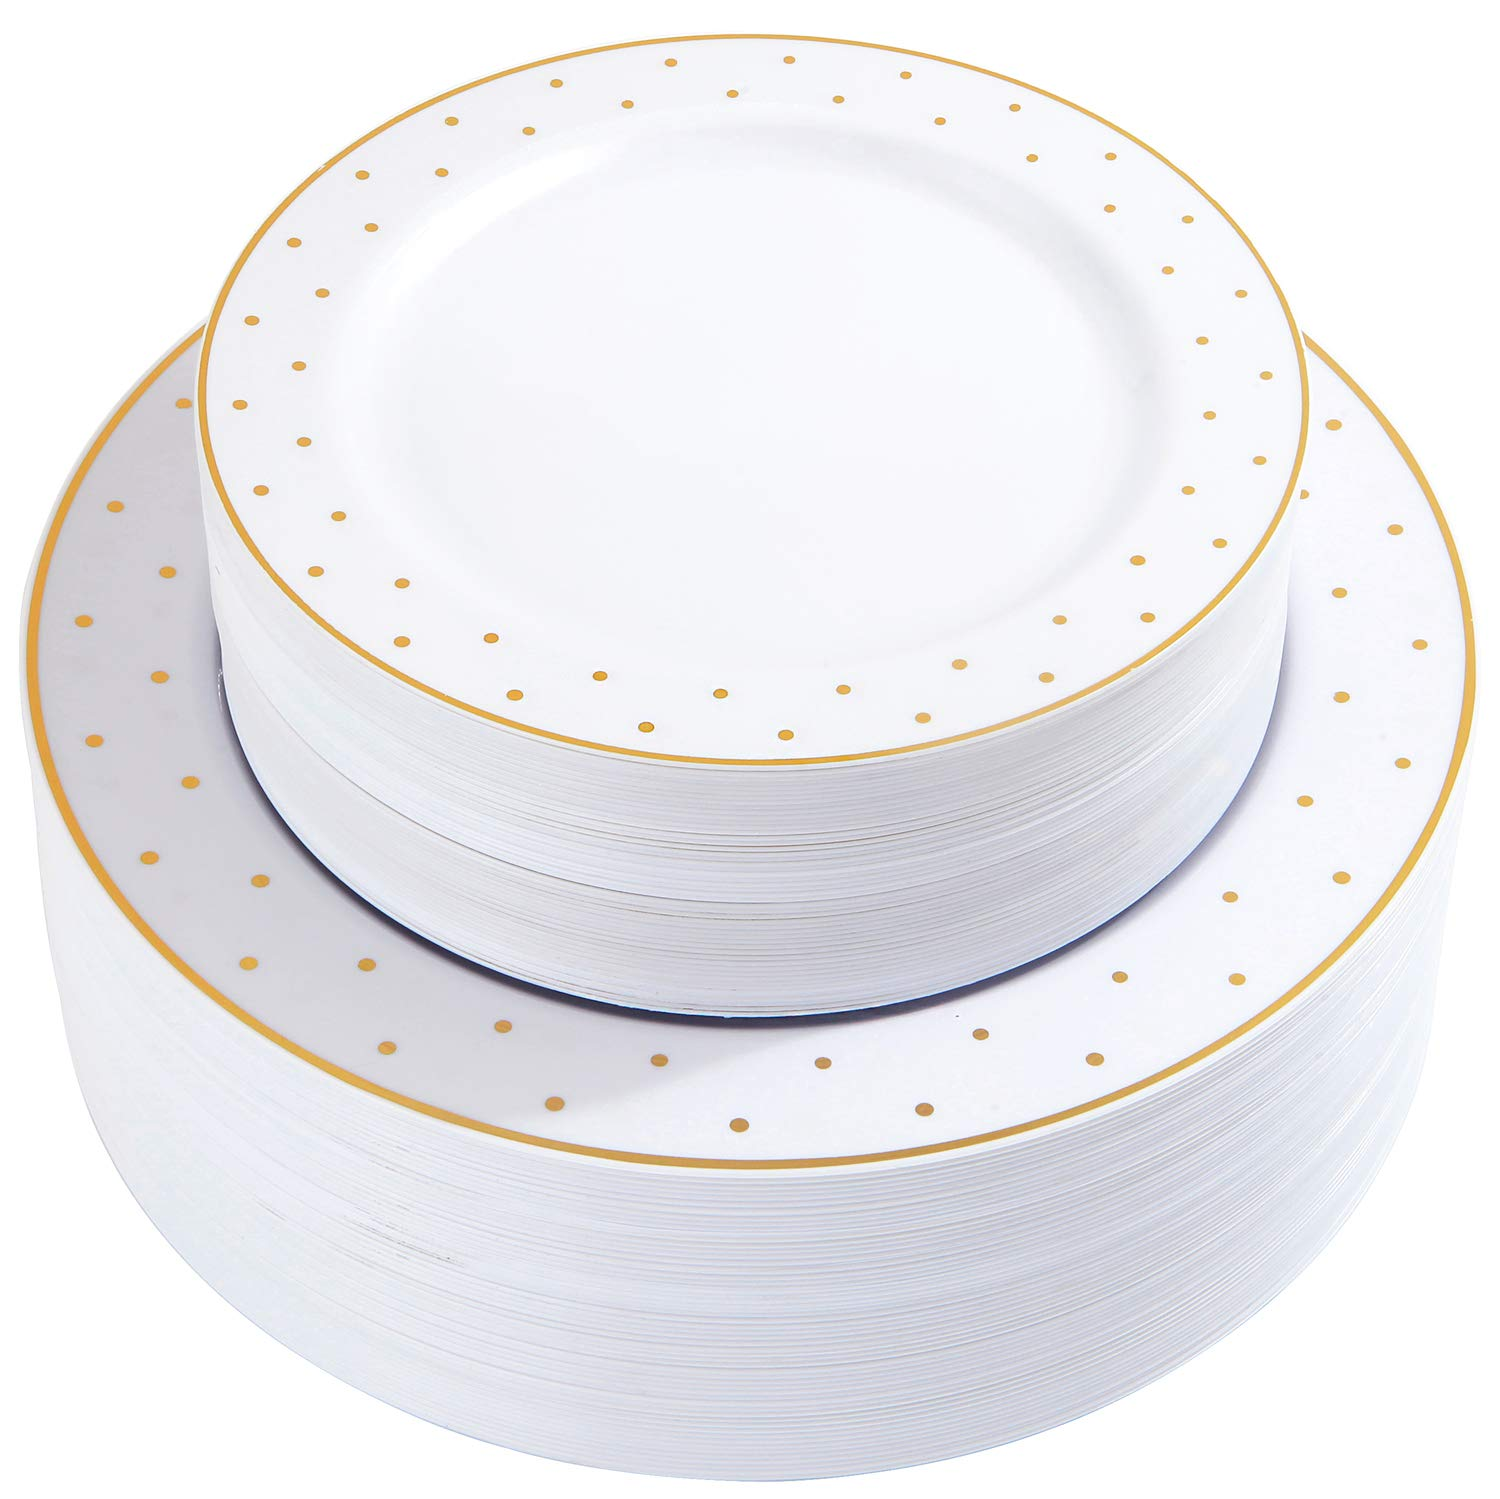 102pcs Gold Plastic Plates, Premium Combo Disposable Dinnerware, Party Plastic Plates, Dot Plates suit for Wedding Includes: 51 Dinner Plates 10.25'' and 51 Dessert Plates 7.25'' by supernal